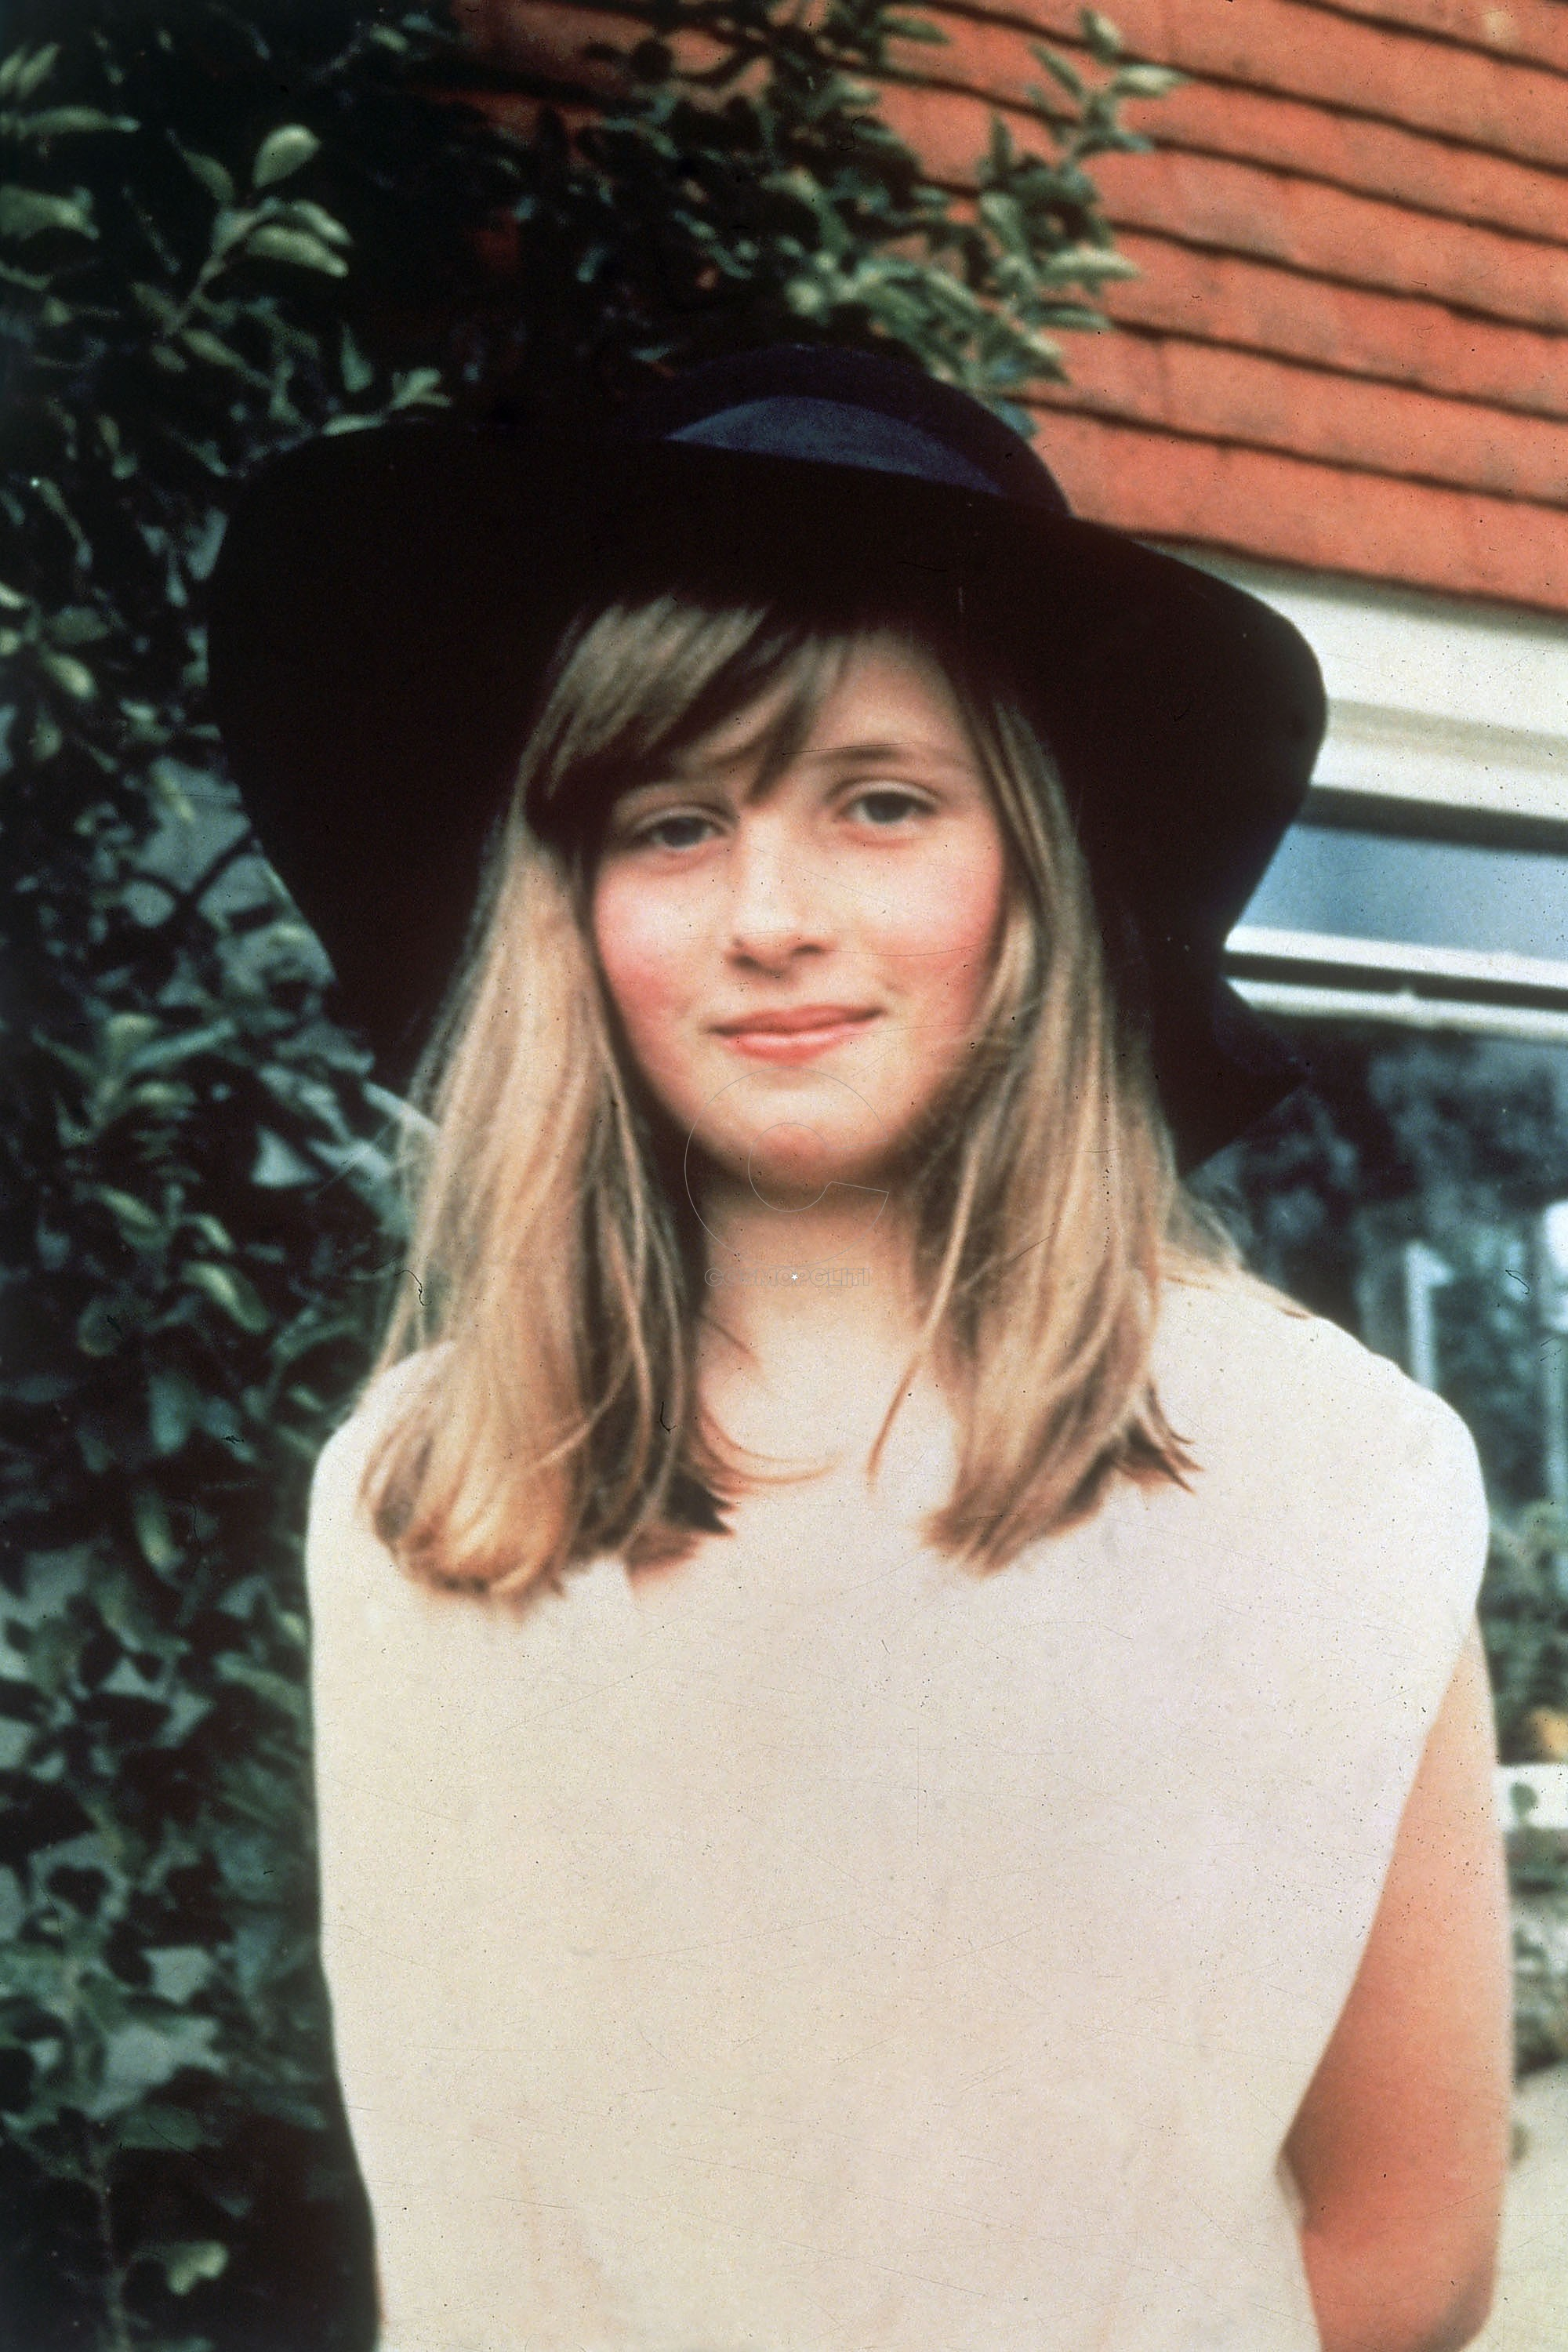 Lady Diana Spencer (1961-1997), the future Princess of Wales during a summer holiday in 1971 in Itchenor, West Sussex in Britain. (Photo by Hulton Archive/Getty Images)